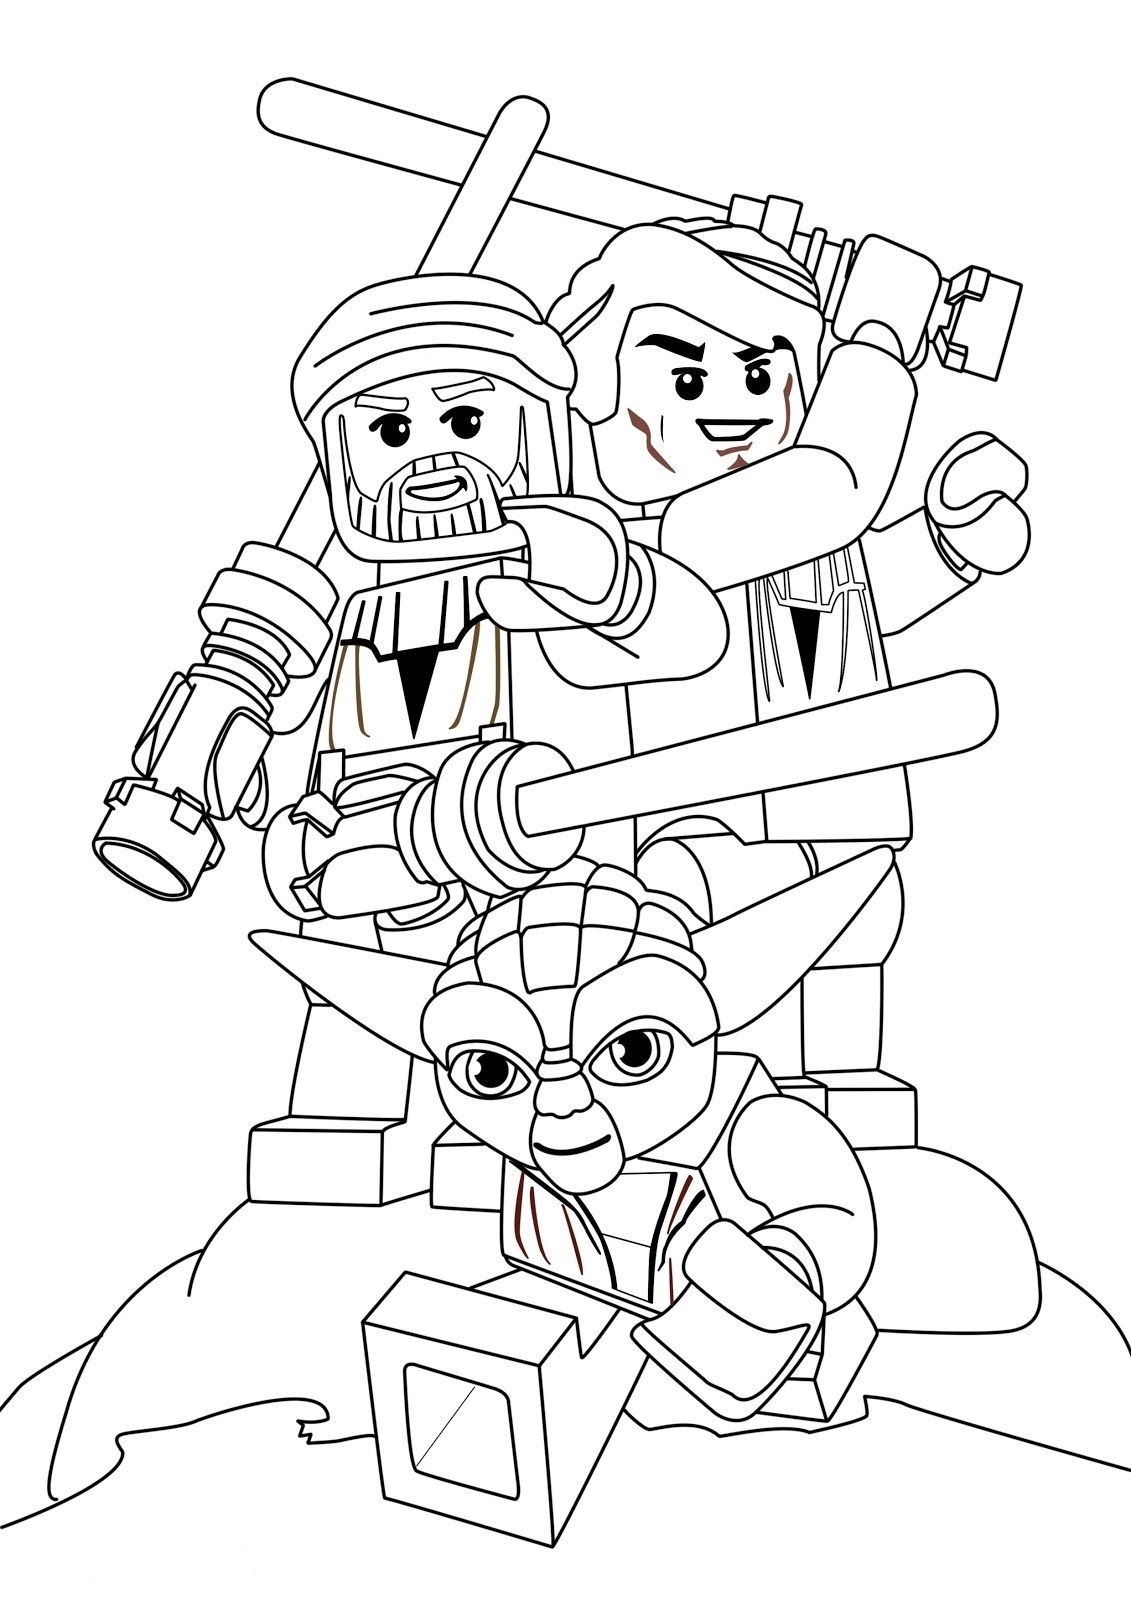 Lego Yoda - Star Wars Coloring Pages | littles [activities ...